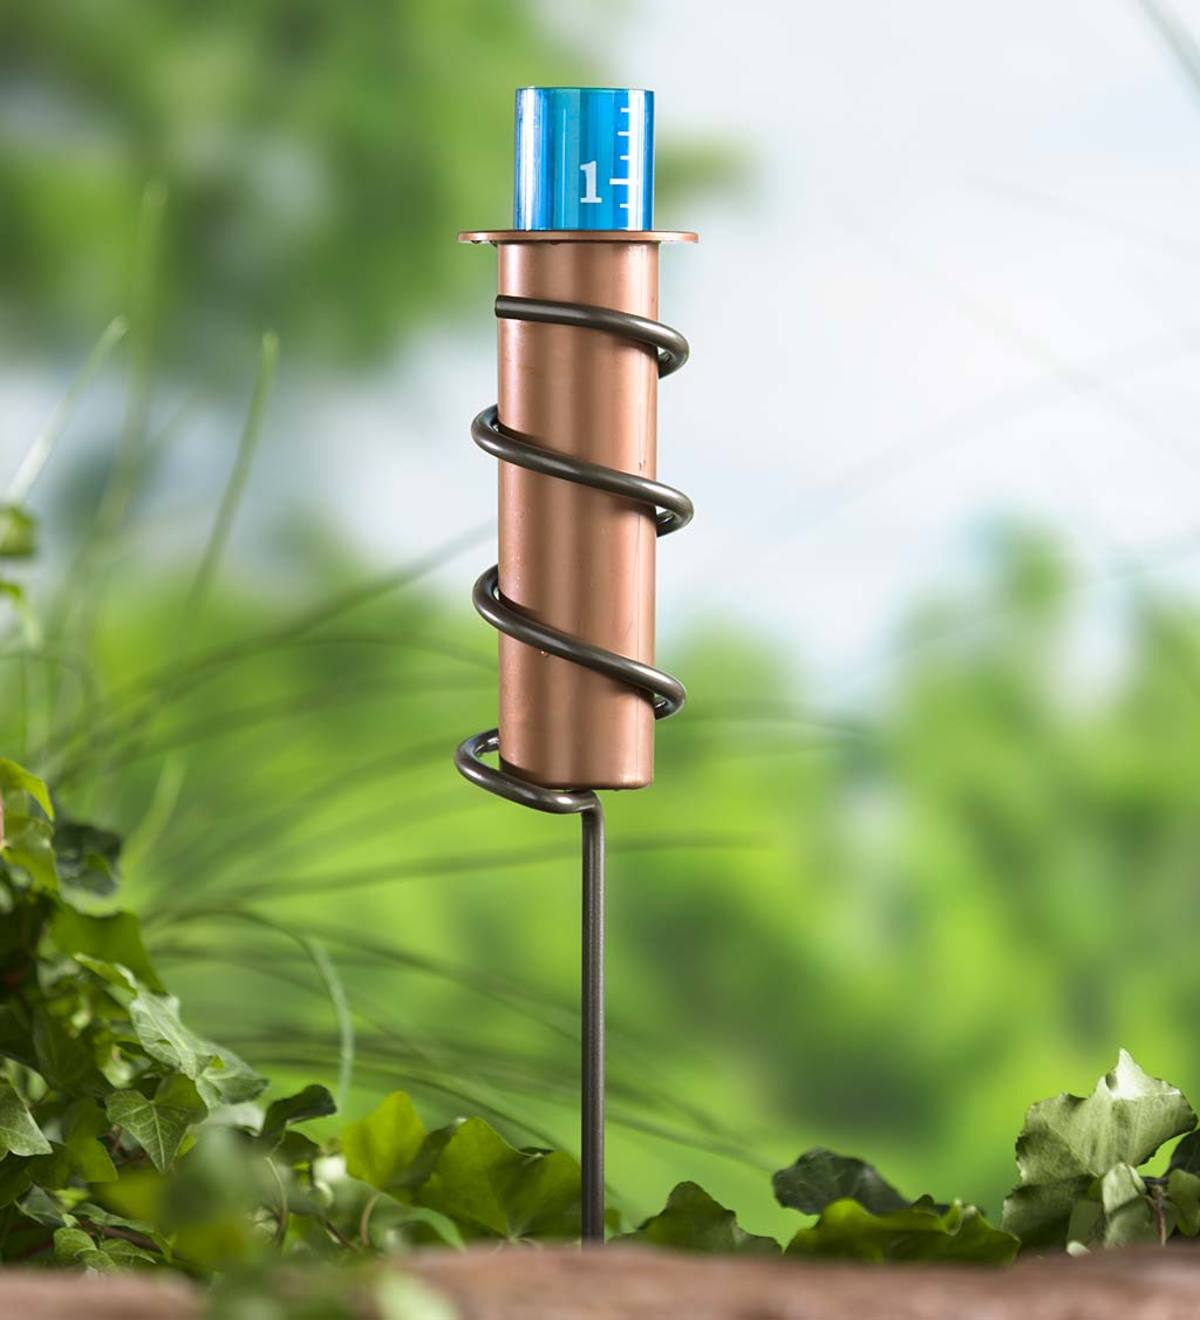 Plastic Floating Rain Gauge with Metal Stake